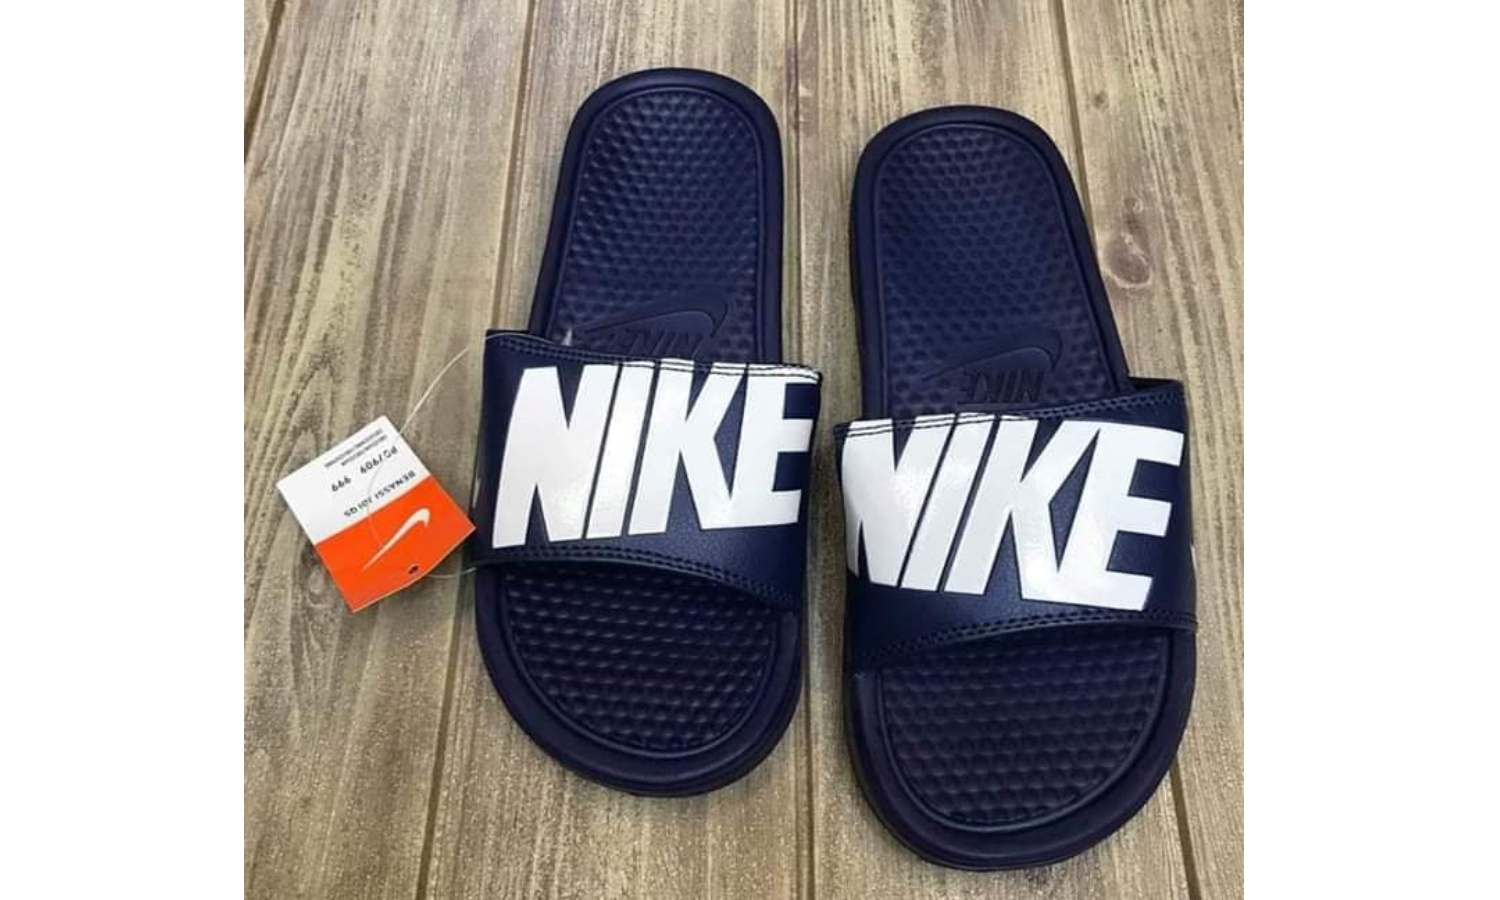 4d9b4022947144 Product details of Nike Slippers Sandals Fashion Footwear for Men